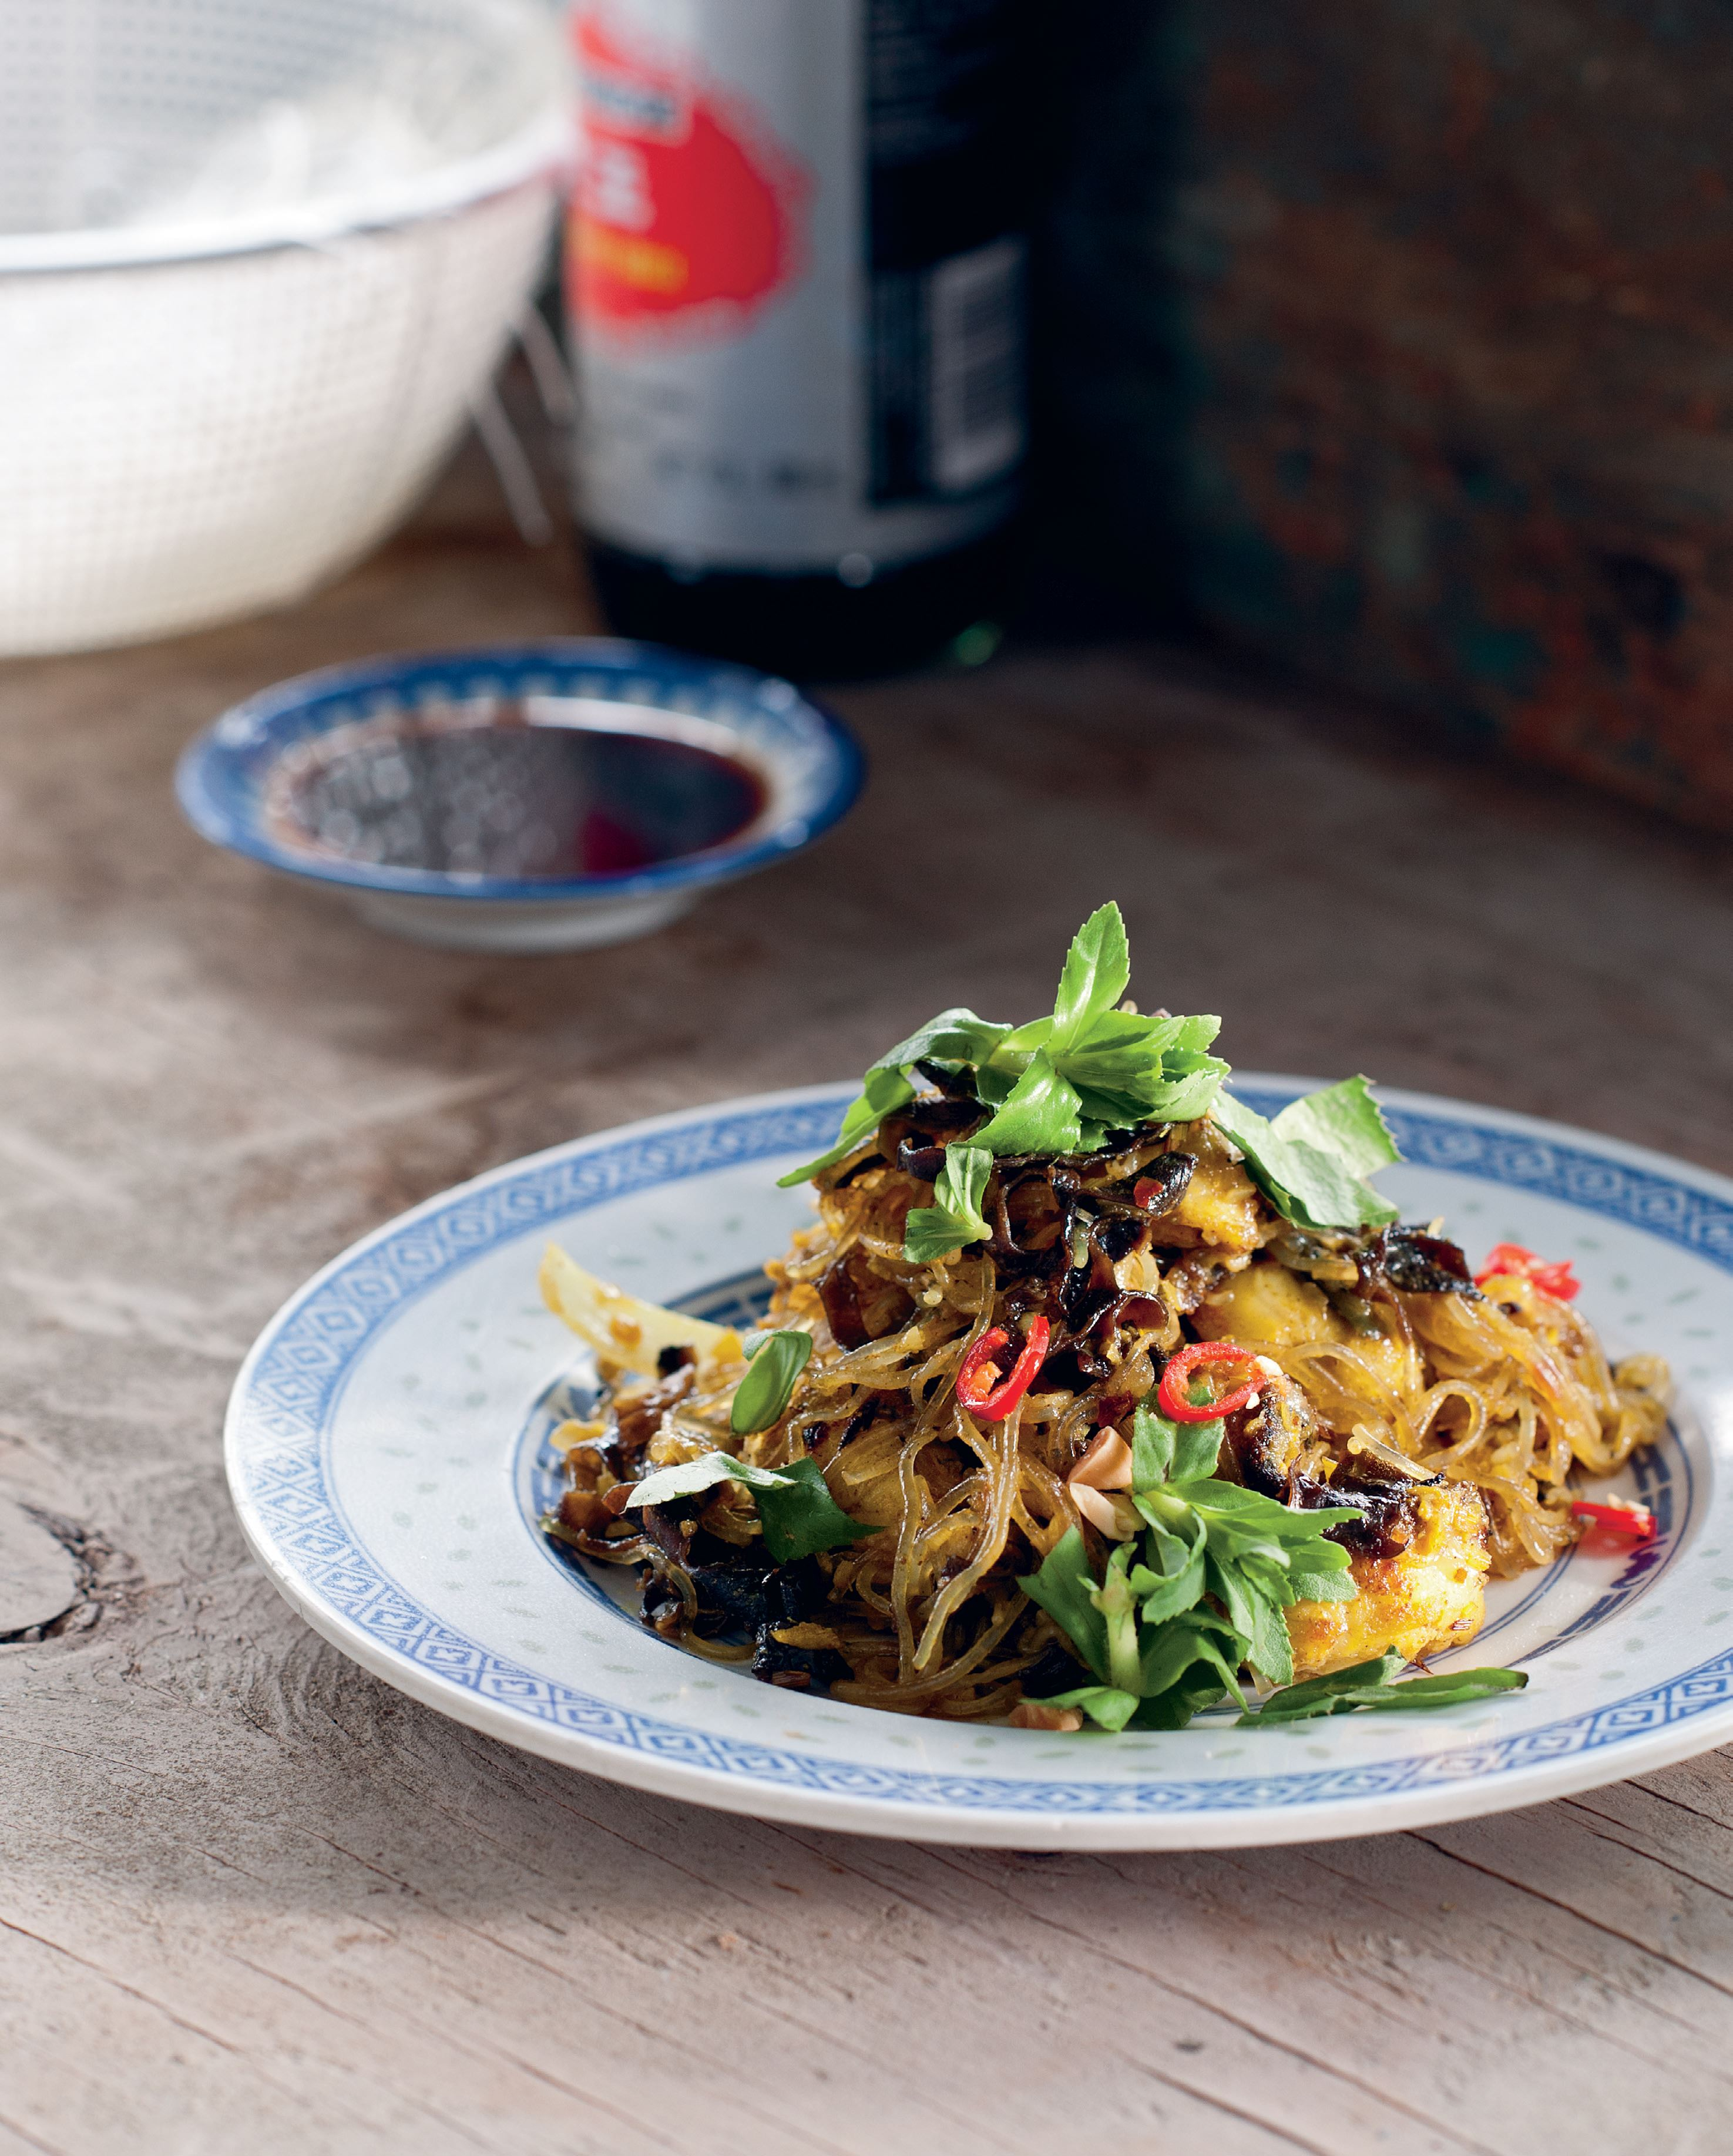 Wok-tossed eel with turmeric and glass noodles